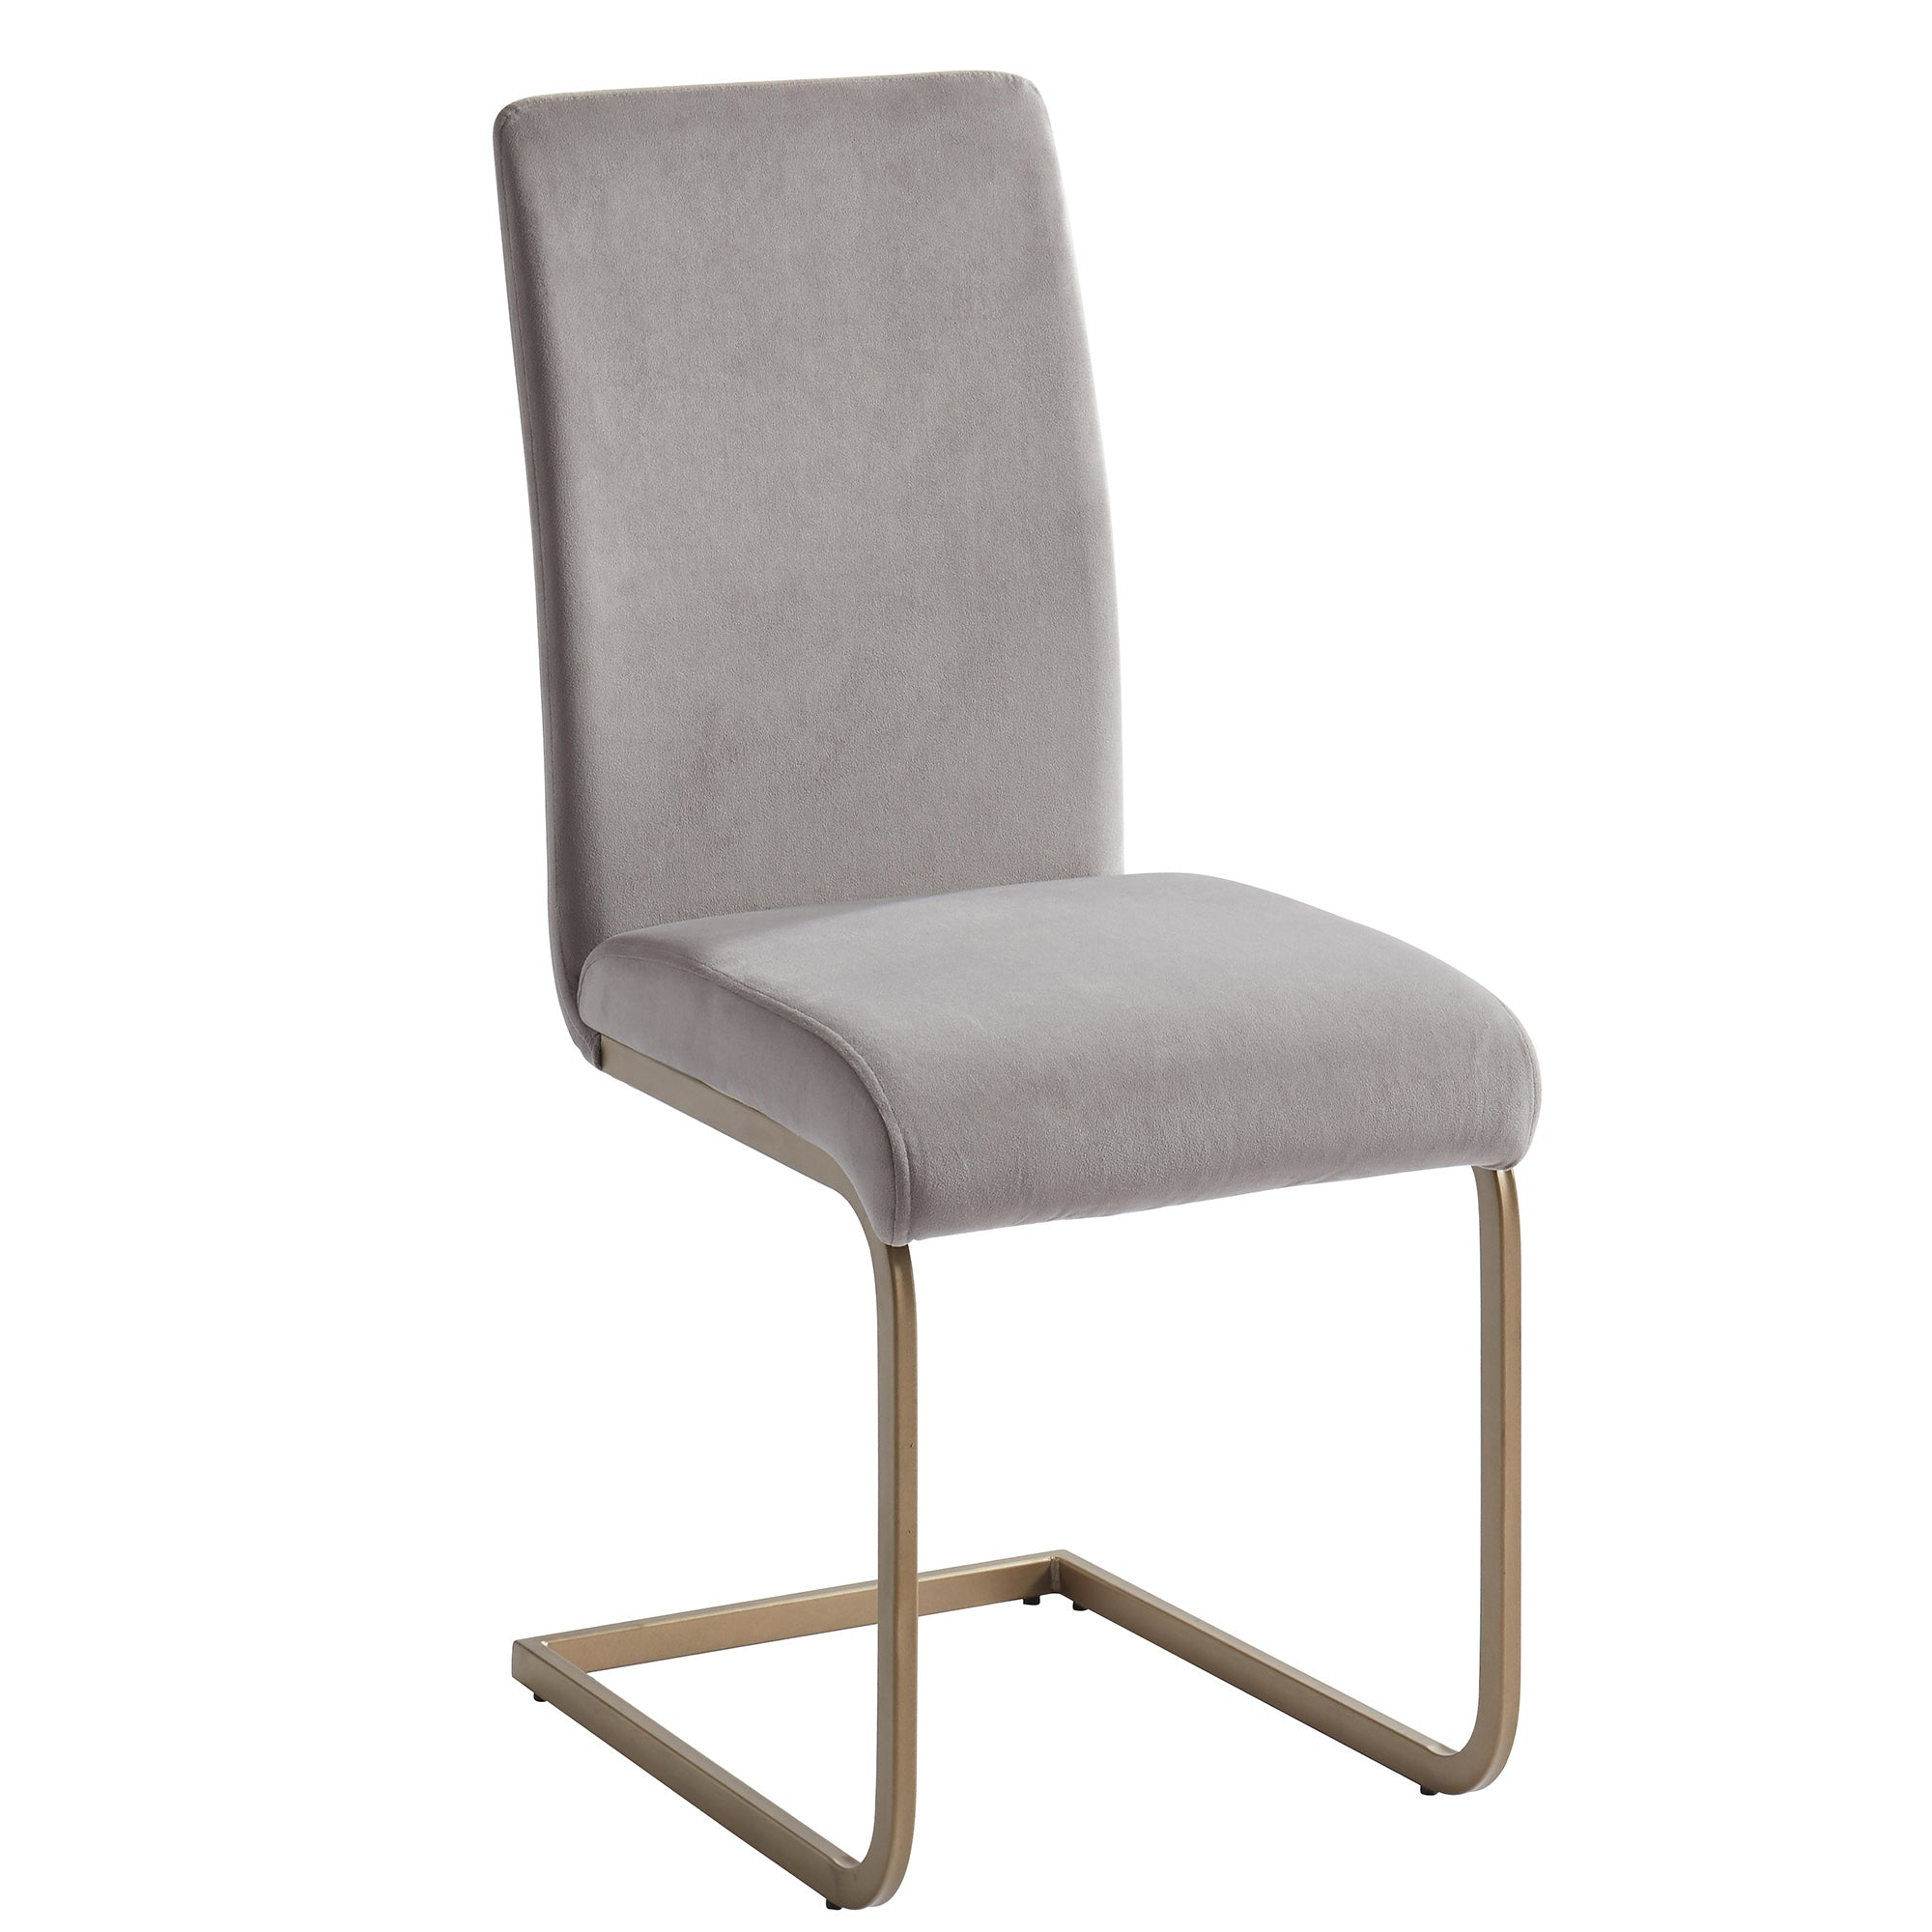 Savion Dining Chair - Grey